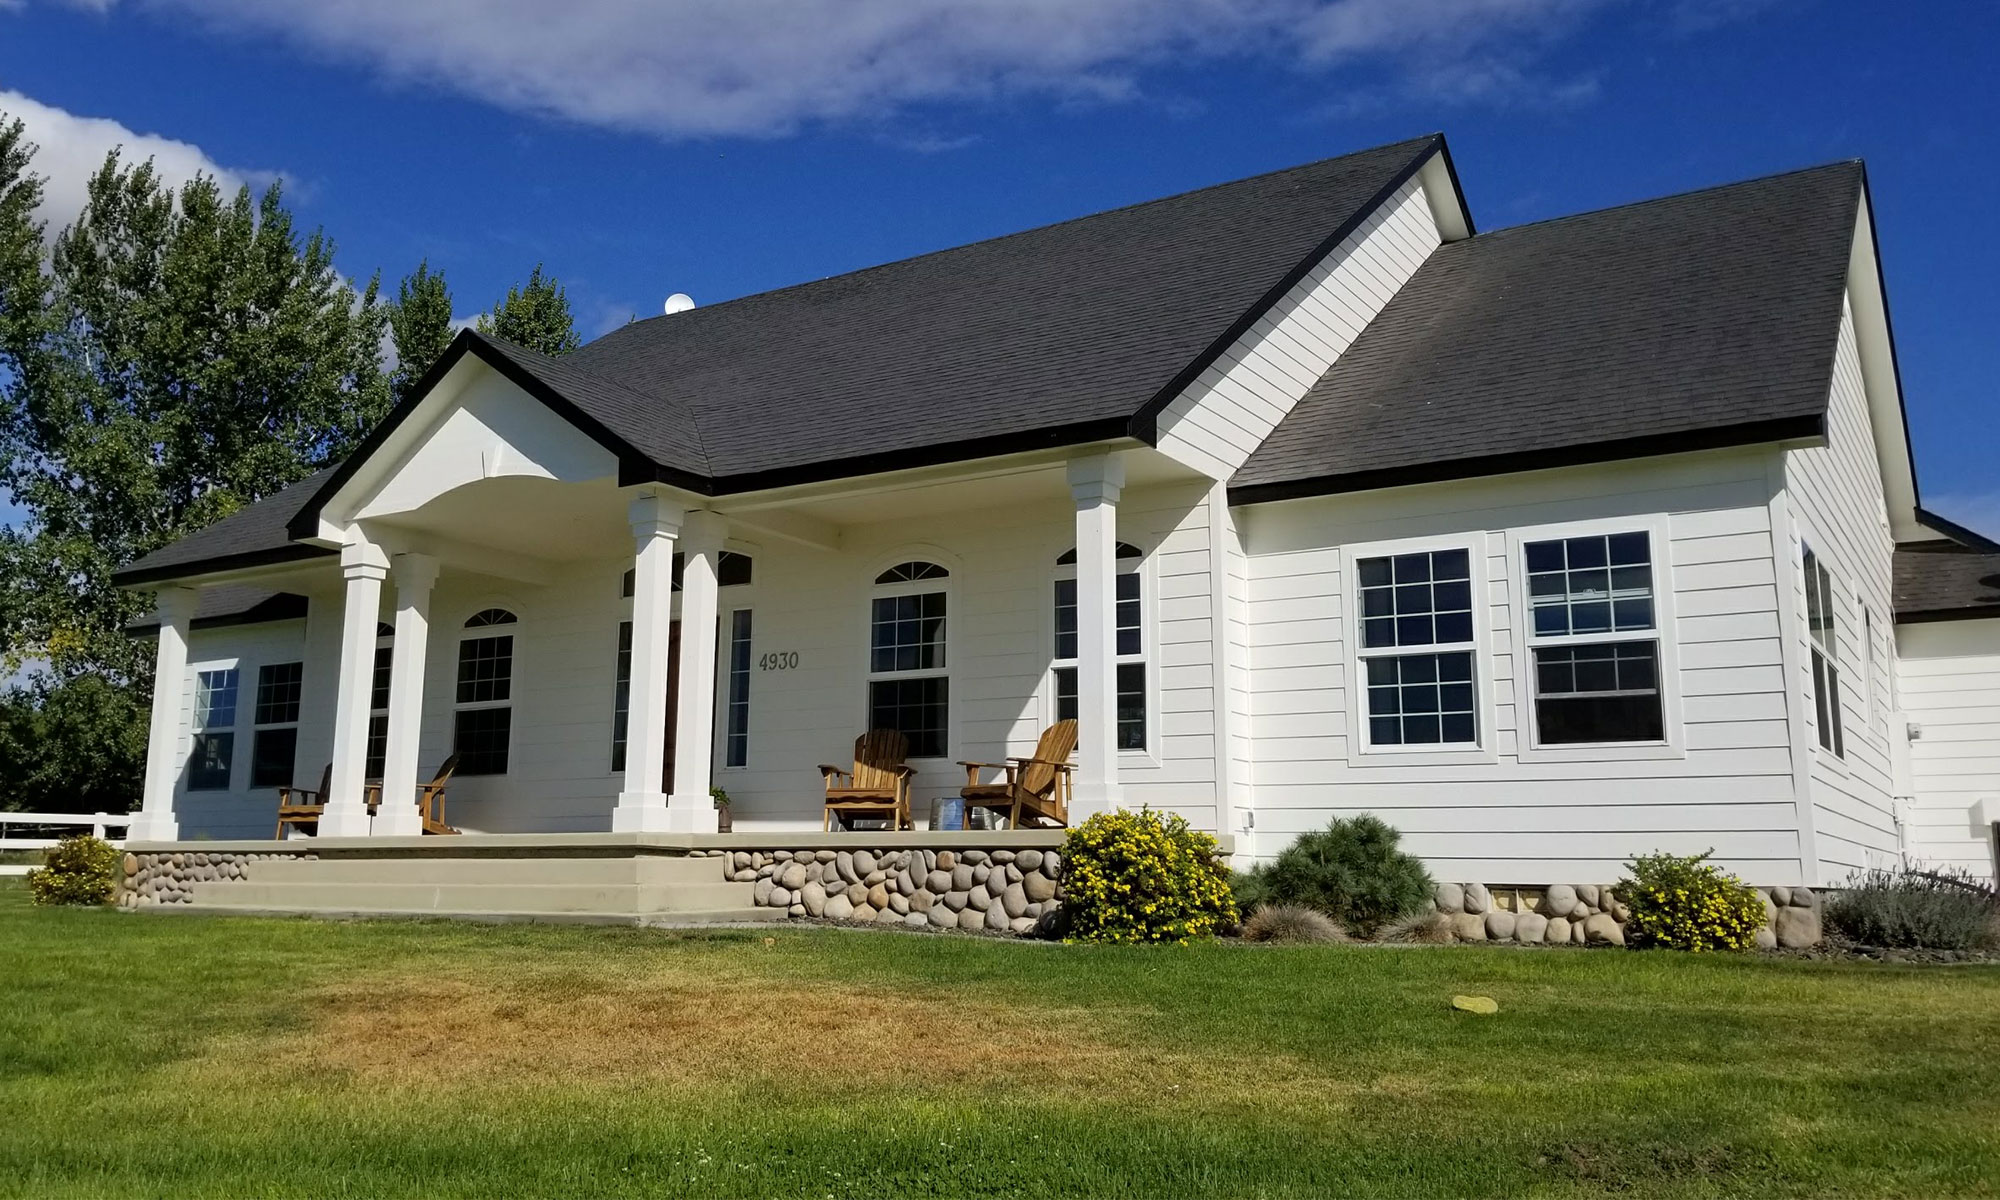 Residential Exterior Painting Brightens And Helps Protects Your Home